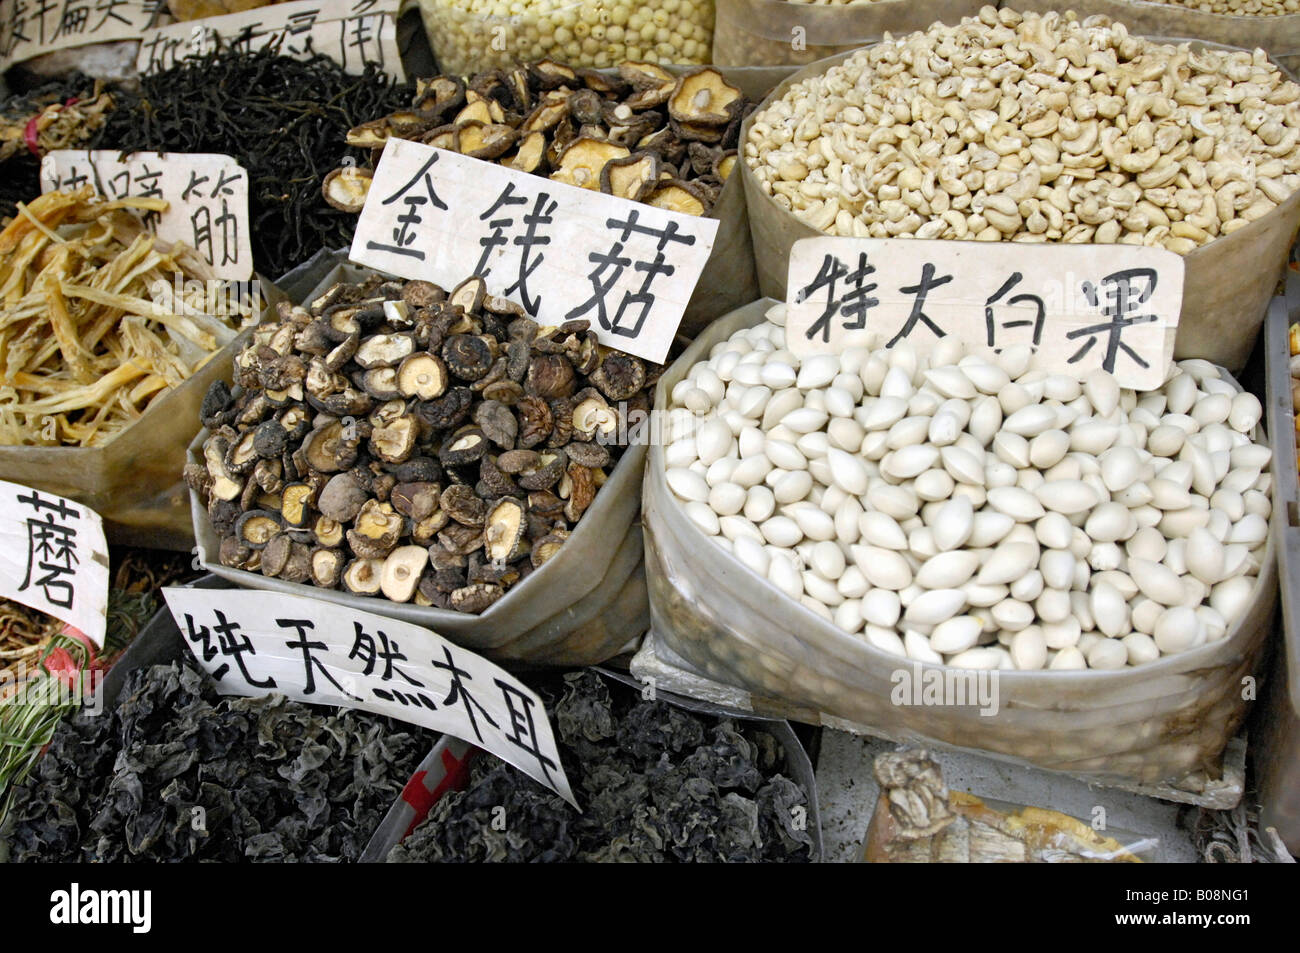 Sacks of dried fish, nuts and beans at a market in Xián, Shaanxi, China, East Asia - Stock Image